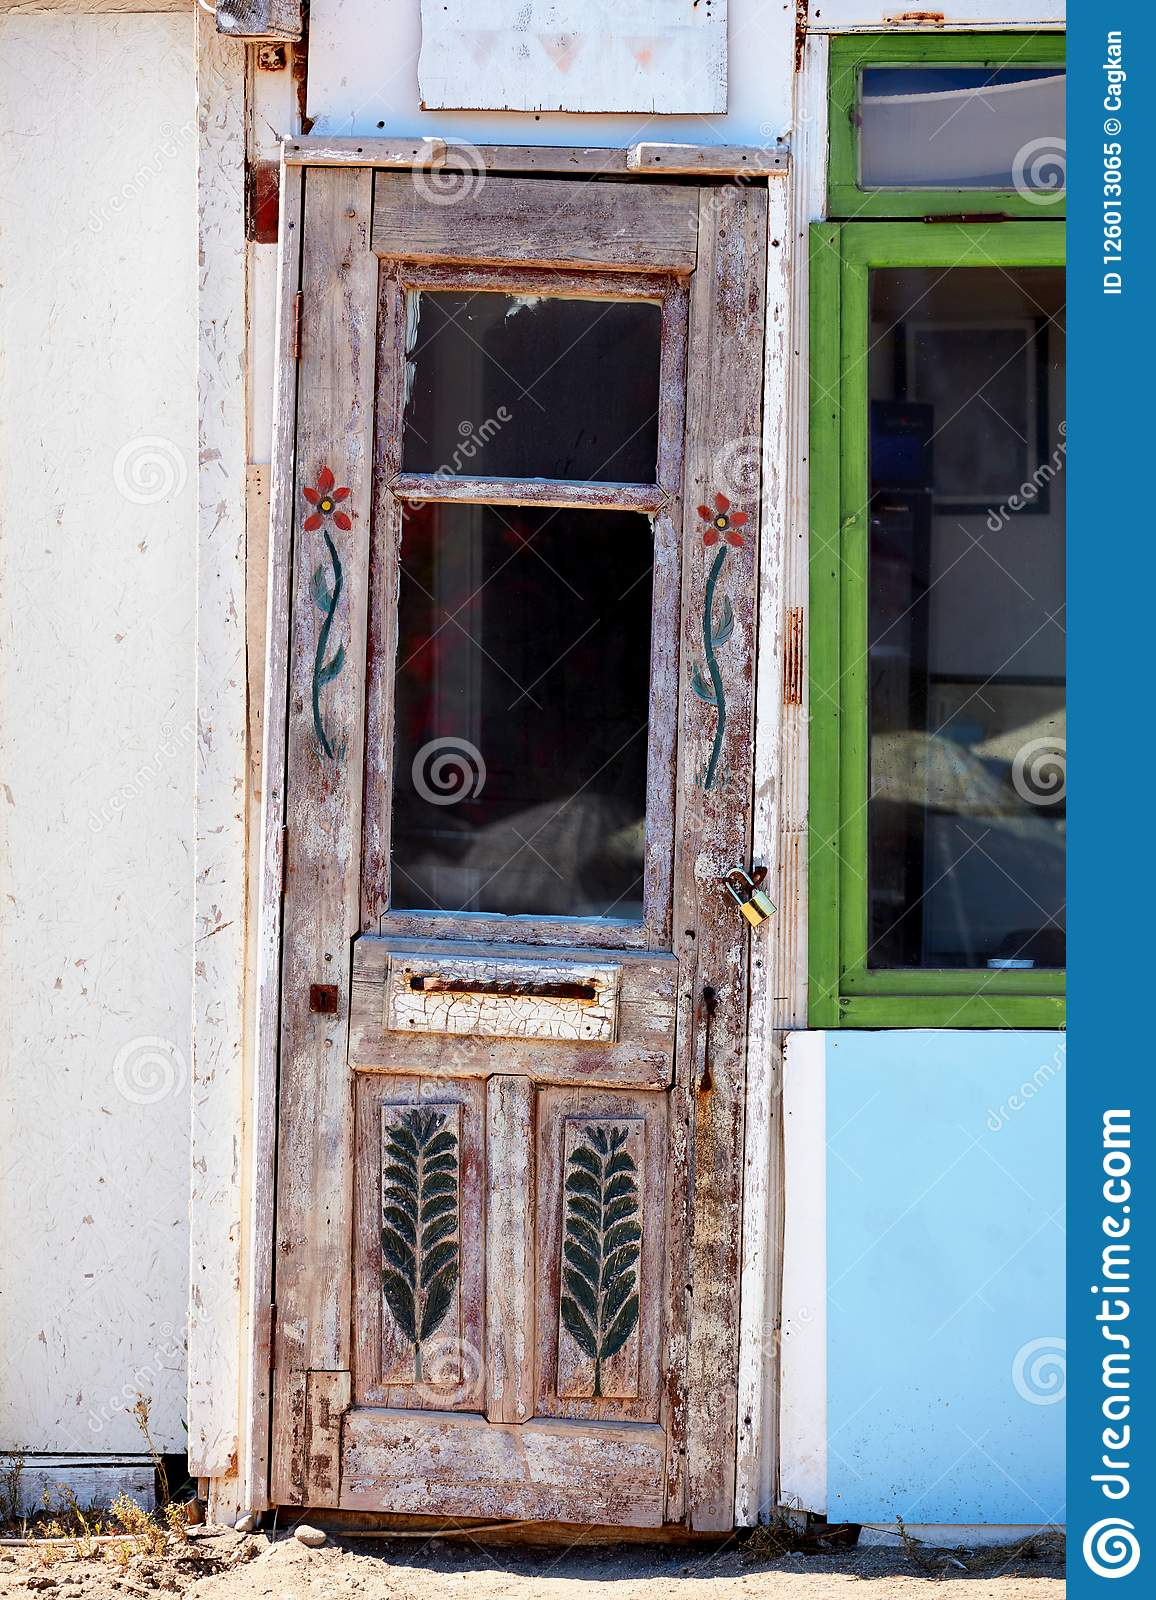 Old Crooked Door With Carvings On It Stock Image Image Of Aged